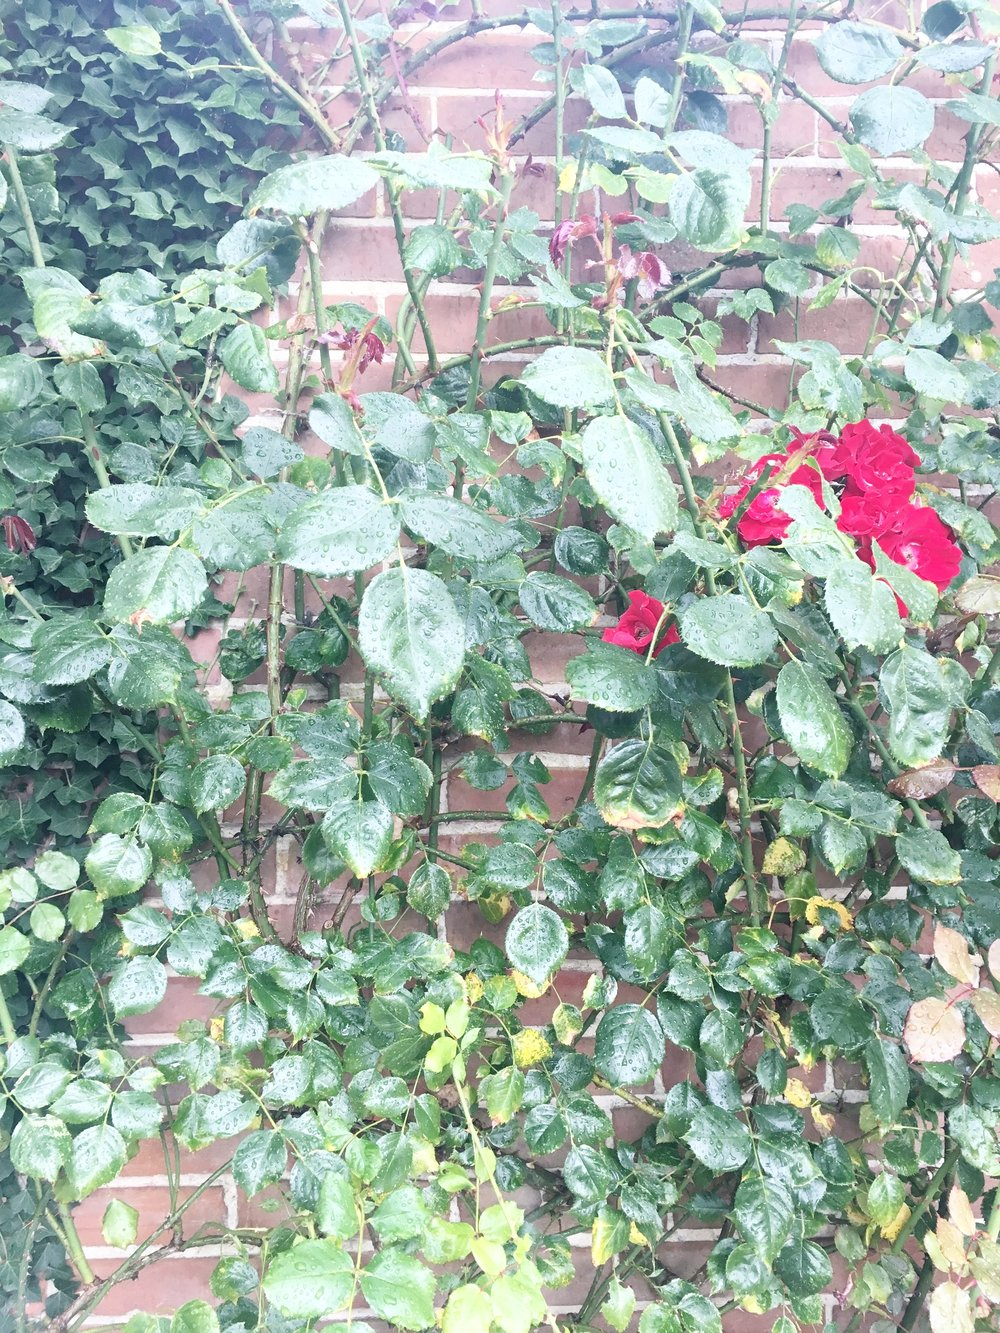 A stunning rose peeking out, climbing up an old and weathered wall at The Walled Nursery.